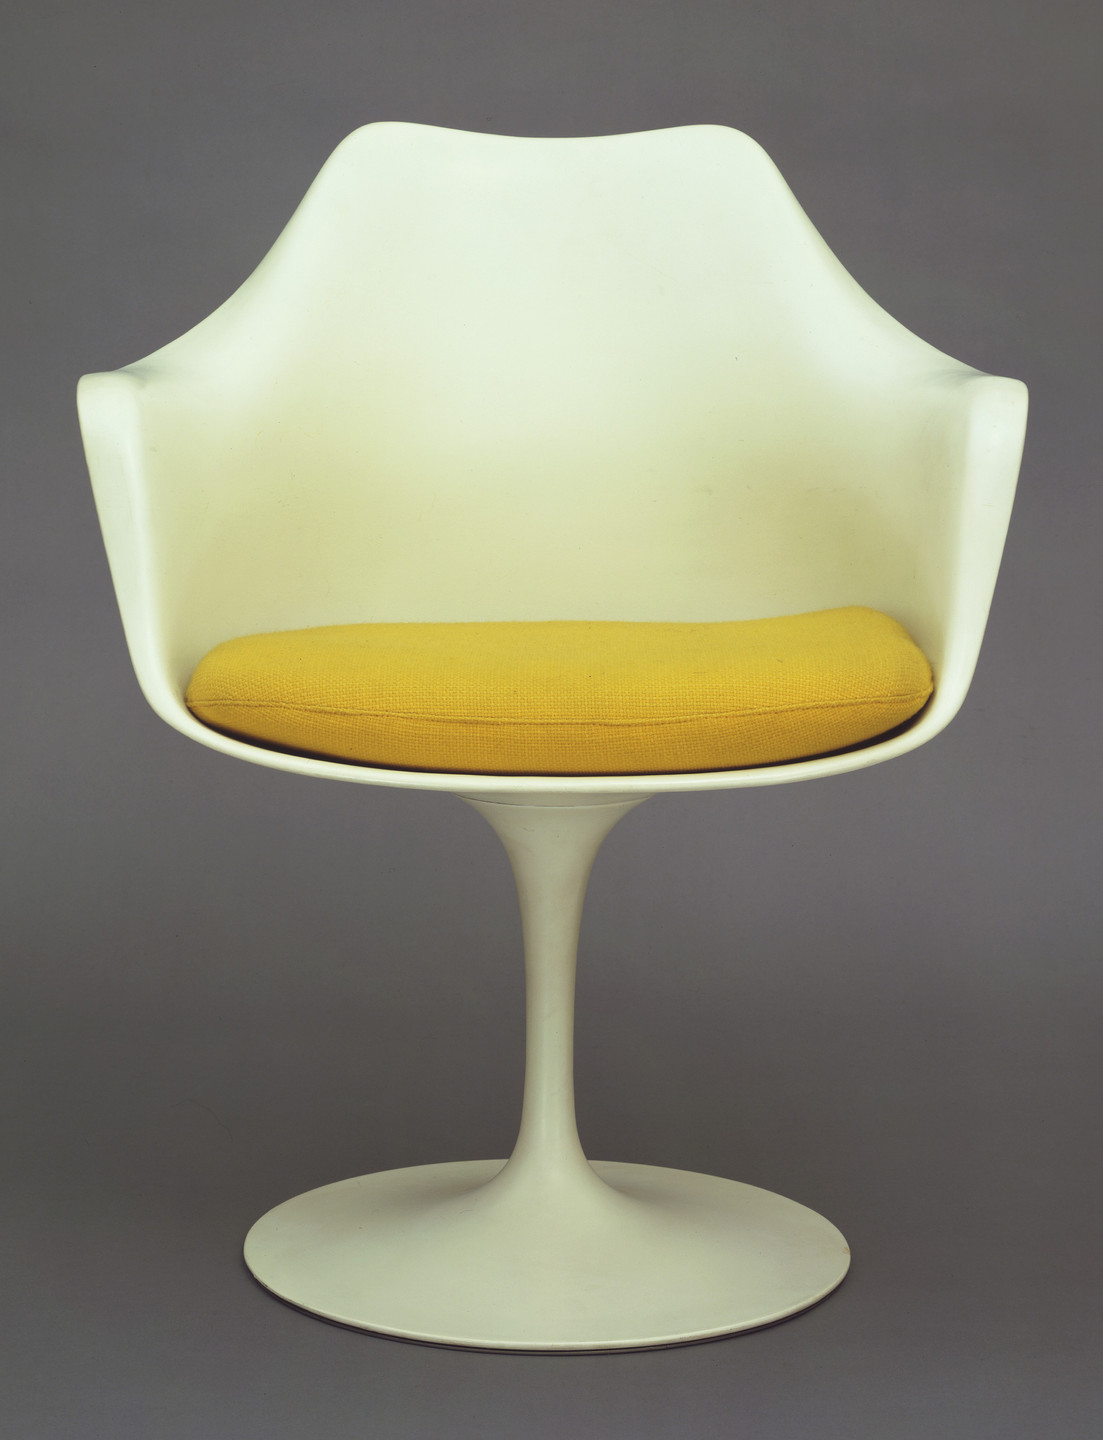 Eero Saarinen. Tulip Armchair (model 150). 1955-56